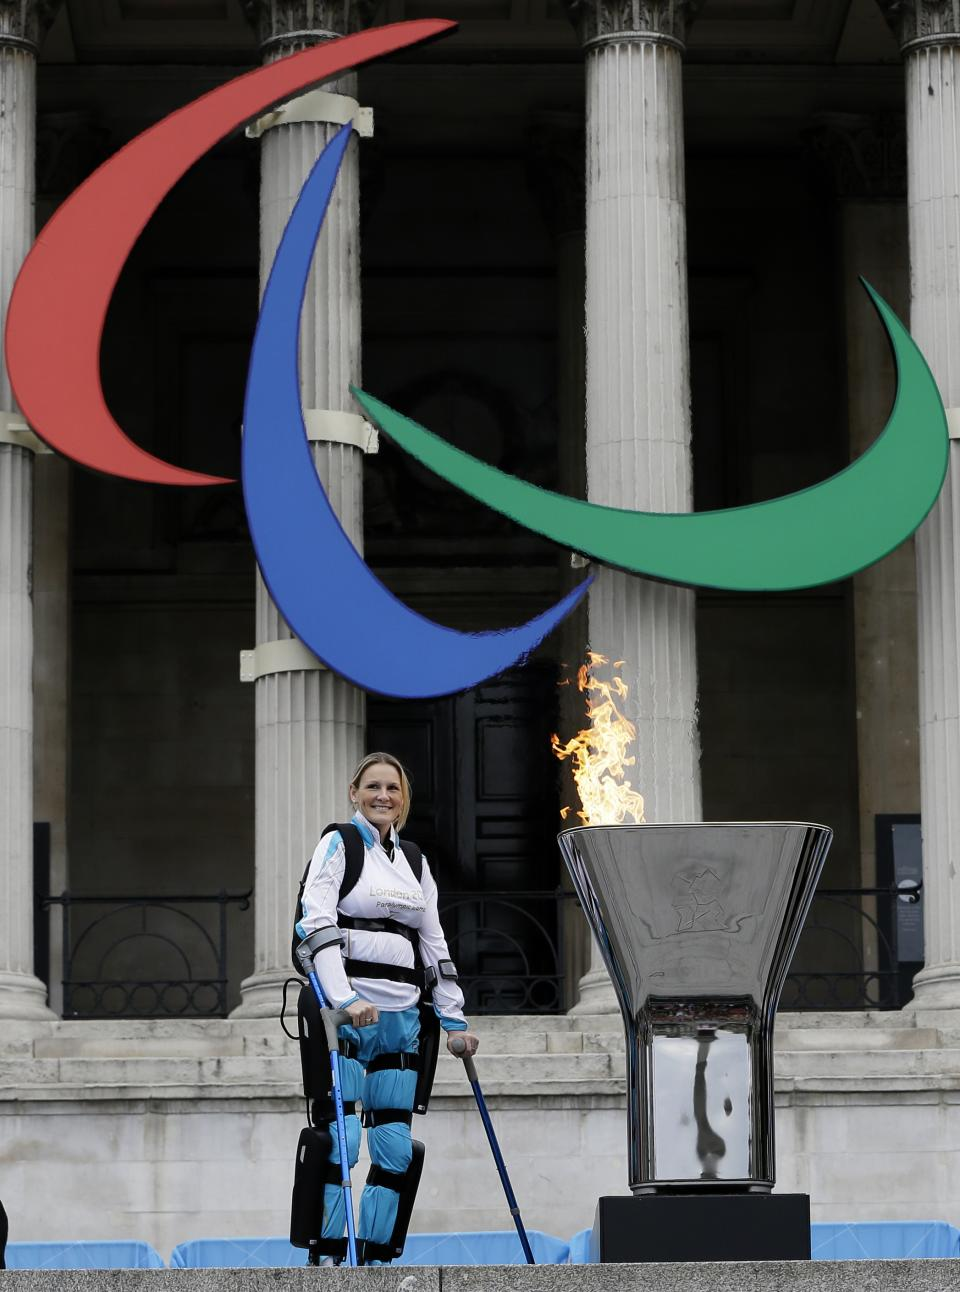 Claire Lomas lstands by  Paralympic flame cauldron  after lighting it in Trafalgar Square in London, Friday, Aug. 24, 2012. Claire had a horse riding accident in 2007 leaving her paralysed from the chest down. The London Paralympics begin on Wednesday Aug. 29. (AP Photo/Kirsty Wigglesworth)